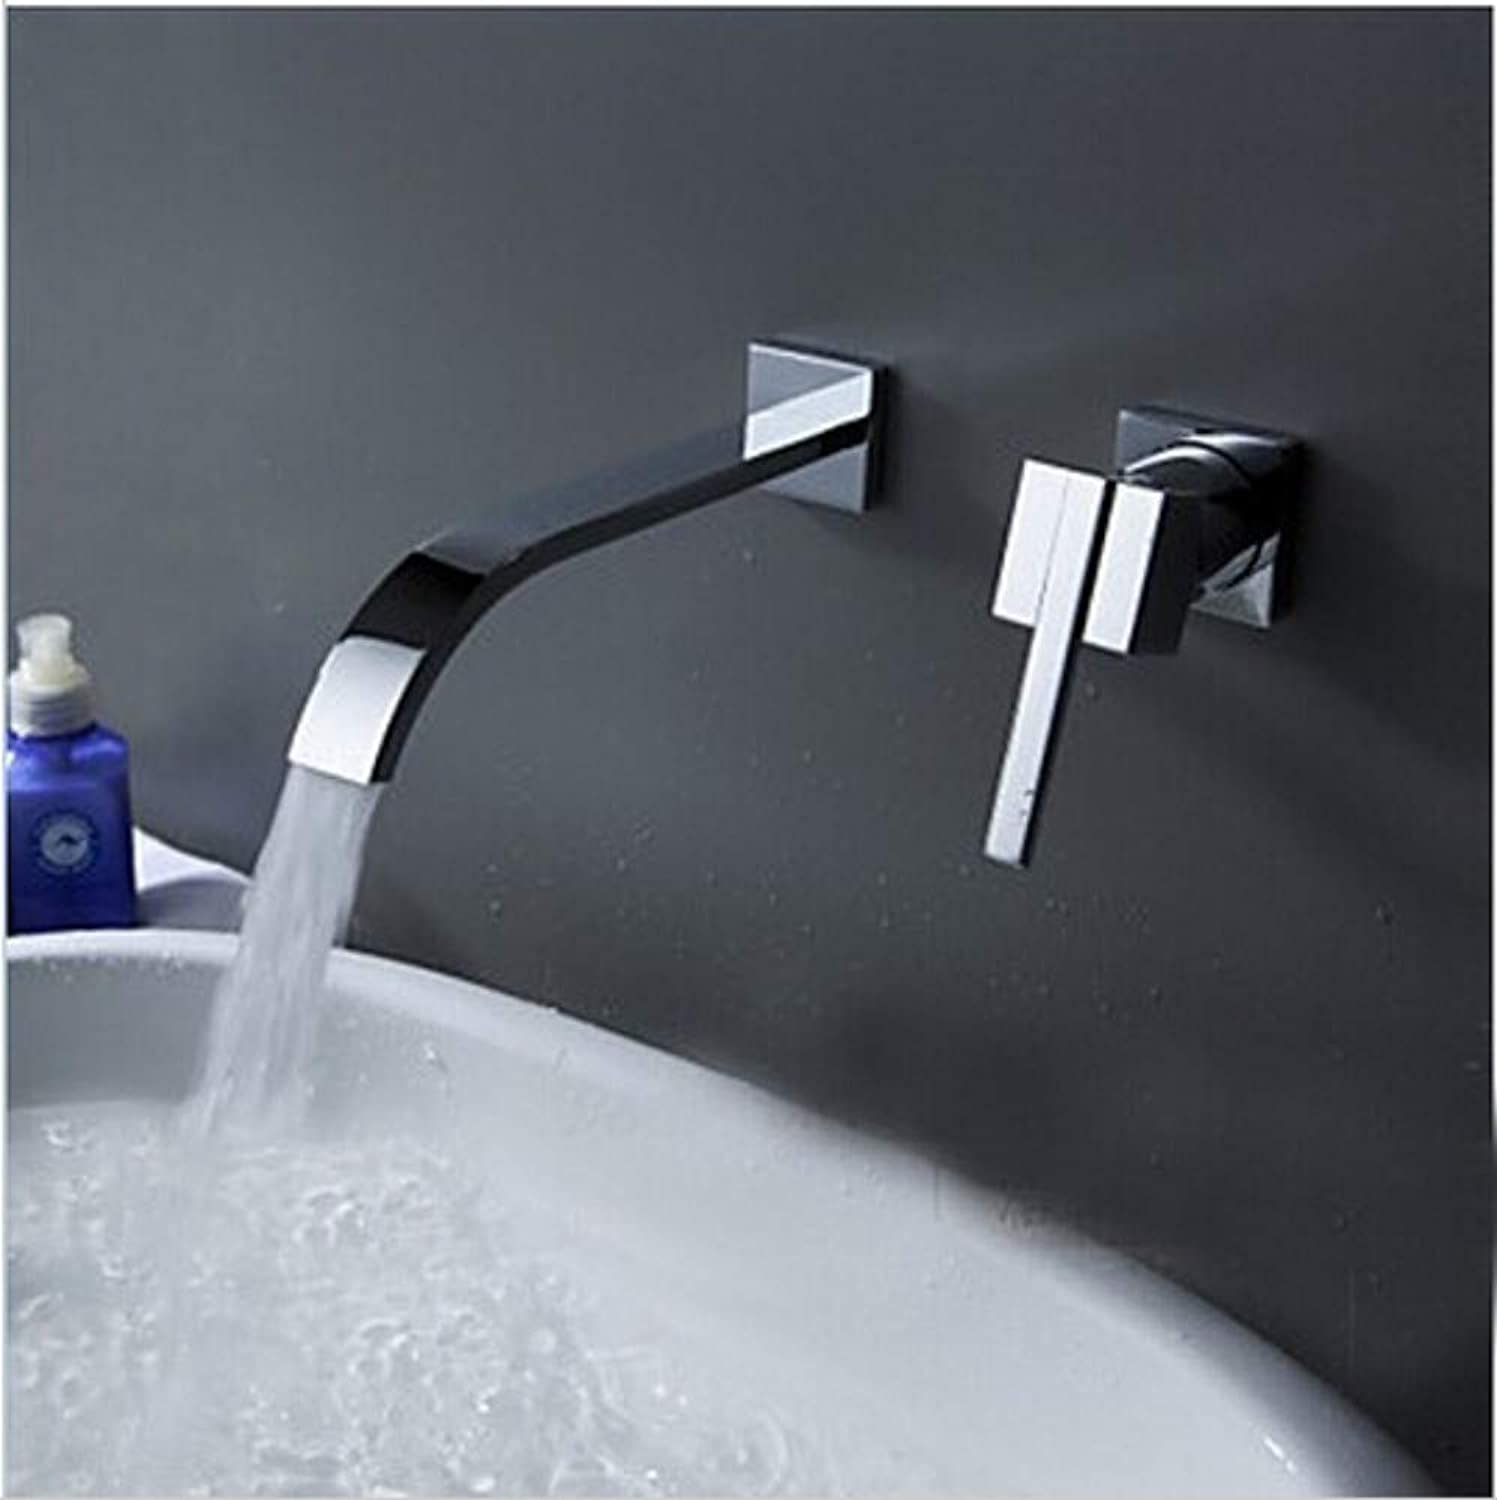 Kitchen Sink Taps Bathroom Sink Taps Wallmounted Washbasin Water Tap 2 Piece Set Flush Faucet Cabinet Mixer Bathroom Hot And Cold Water Faucet